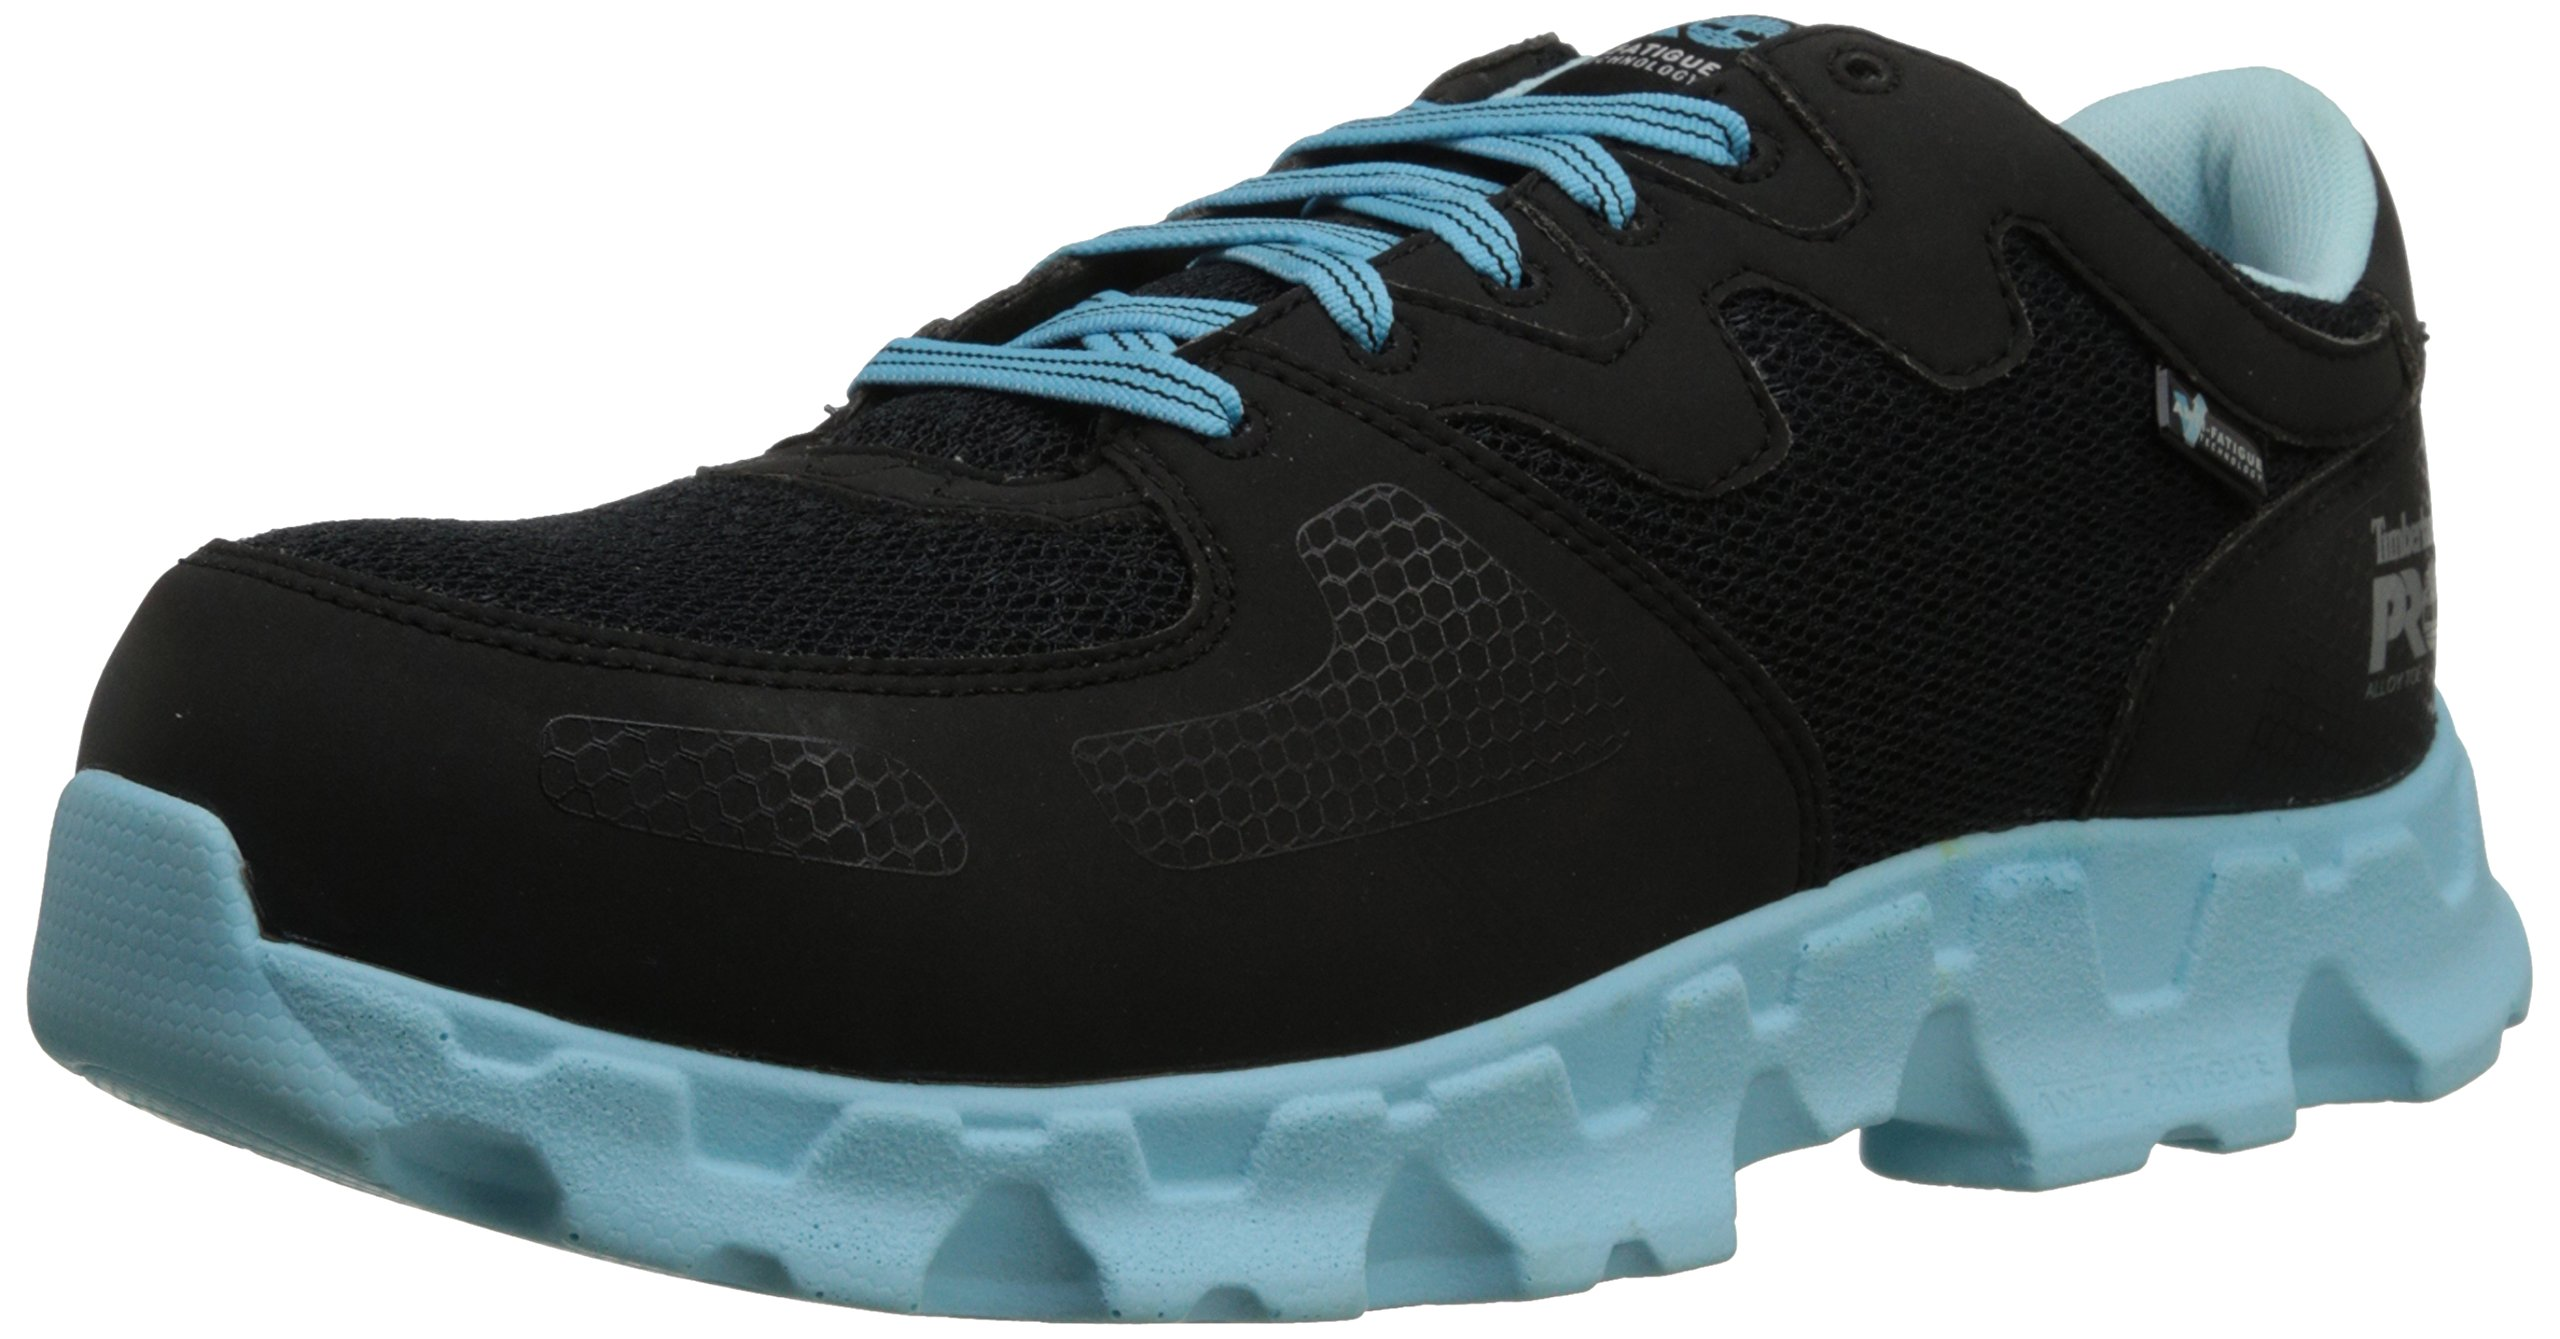 Timberland PRO Women's Powertrain Alloy Toe ESD W Industrial Shoe,Black/Blue Microfiber And Textile,5.5 W US